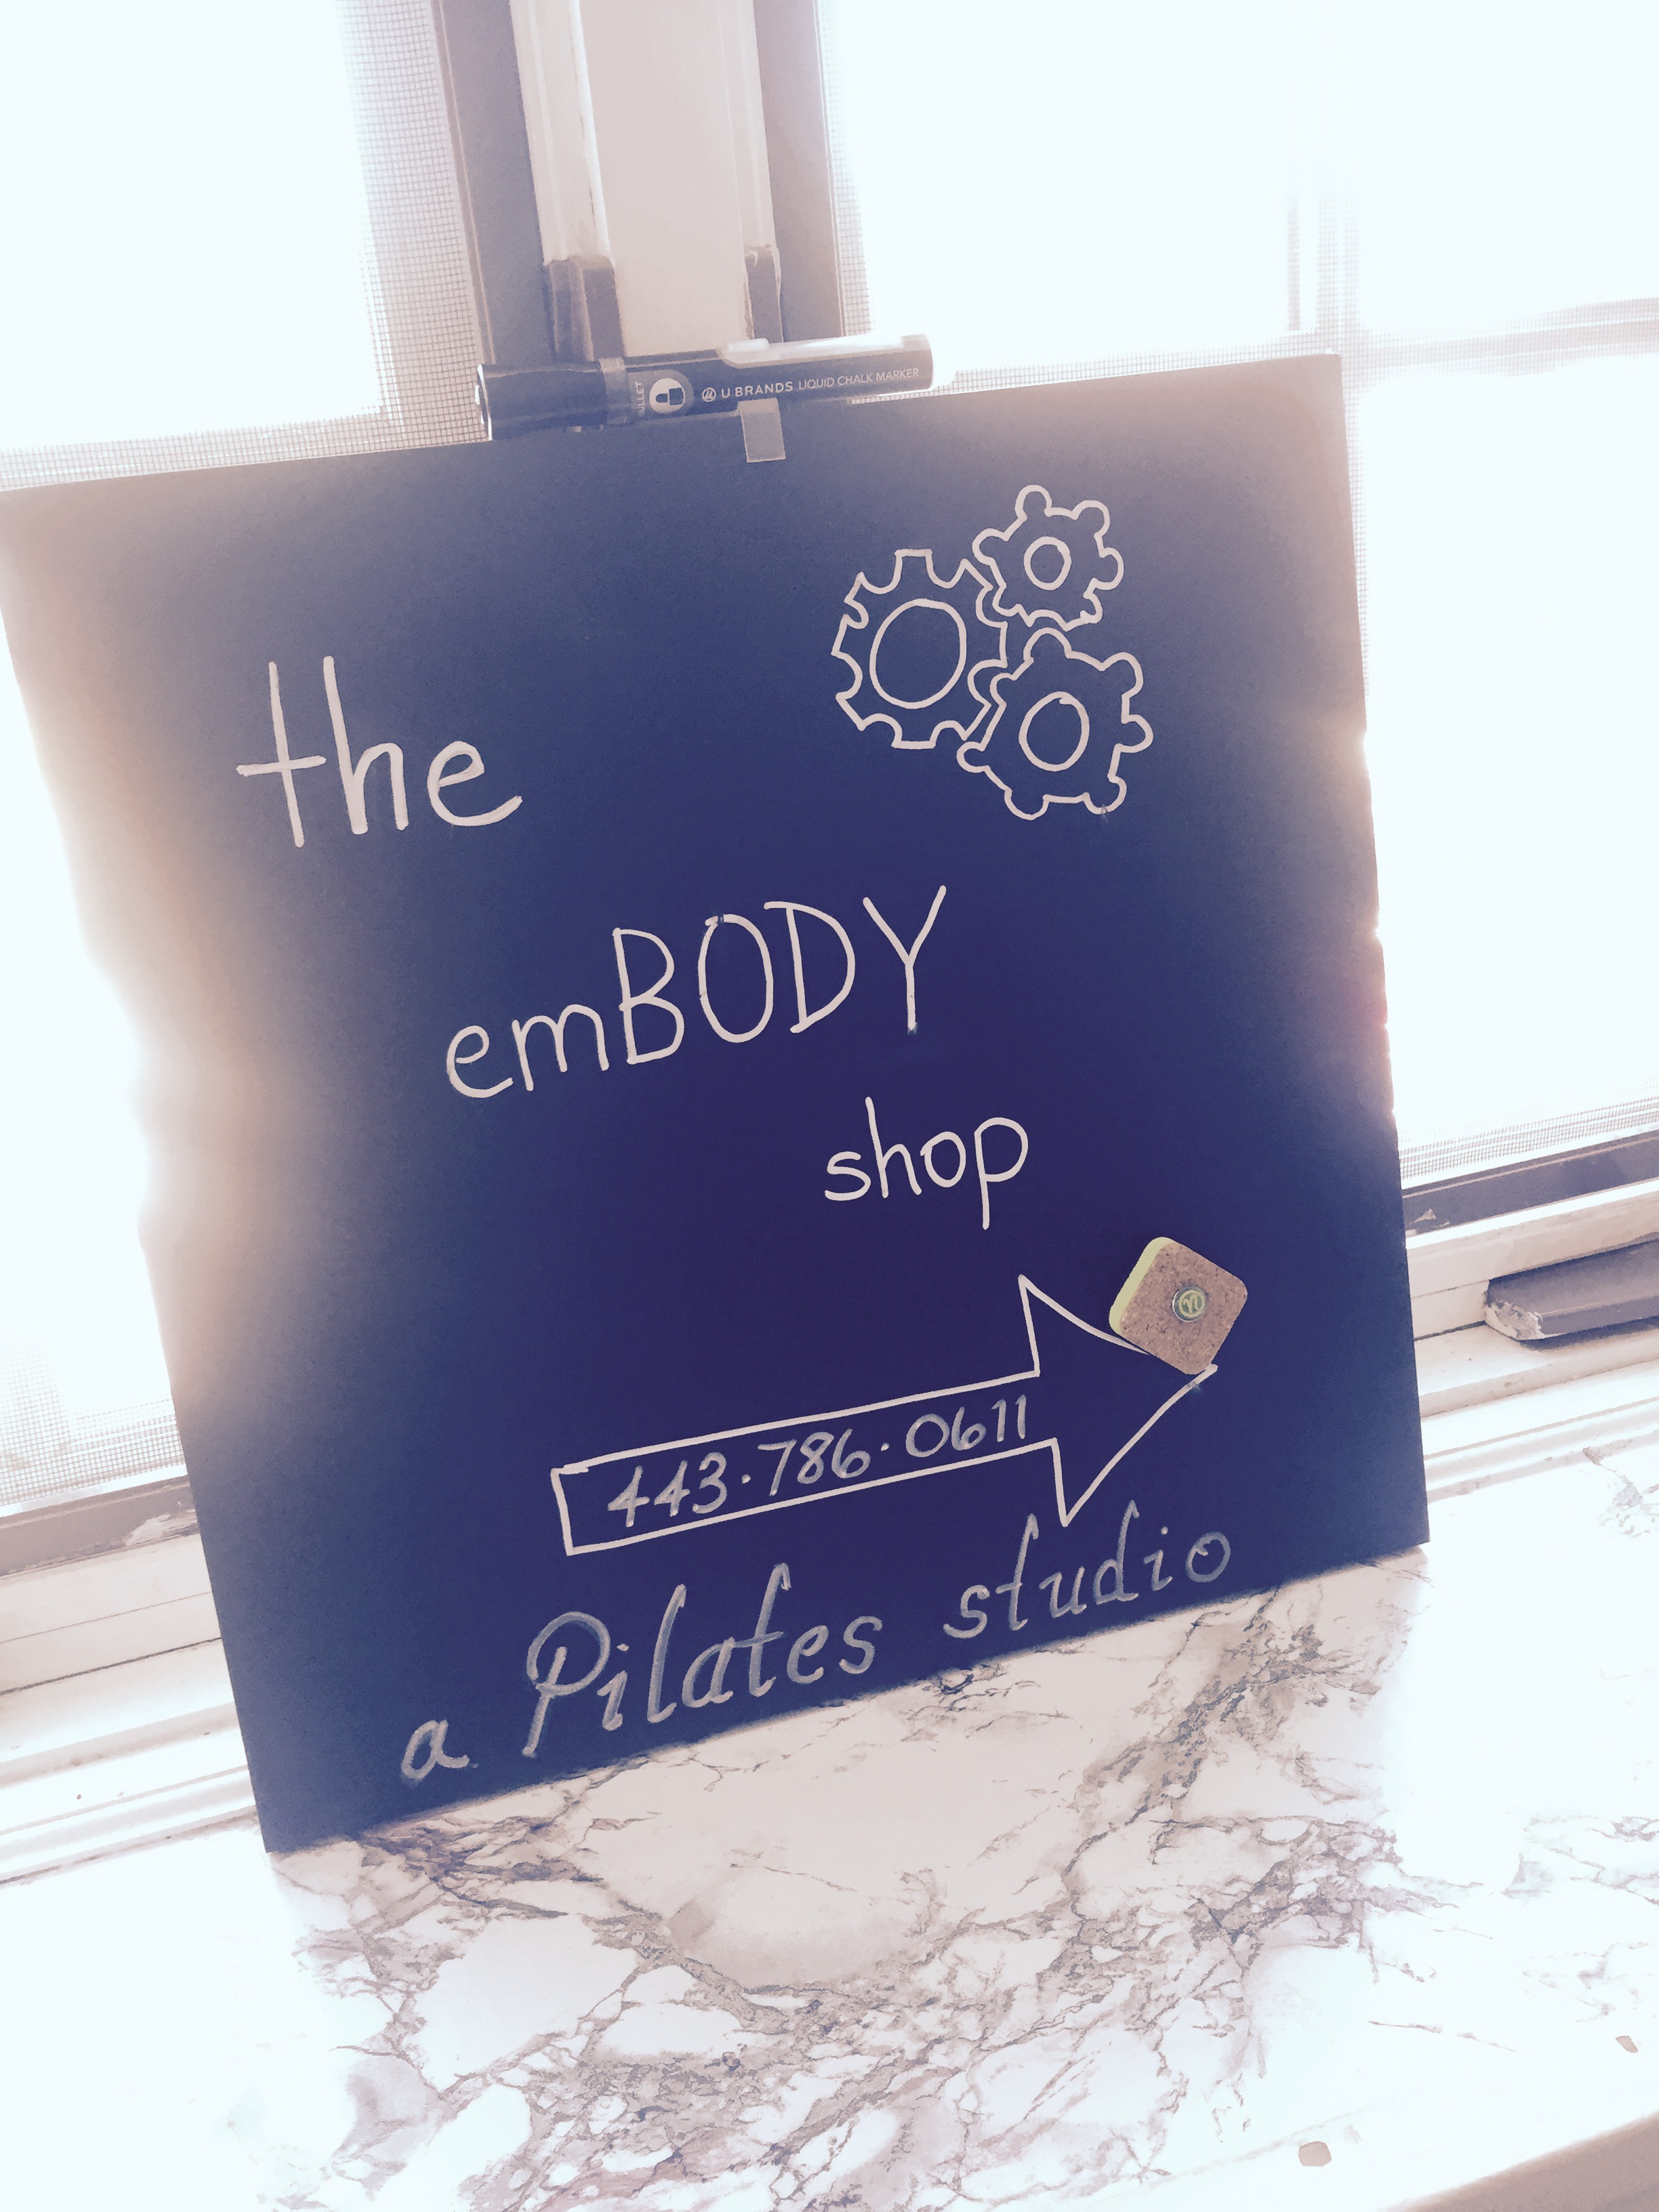 The emBody Shop – New Pilates Studio in Easton, MD